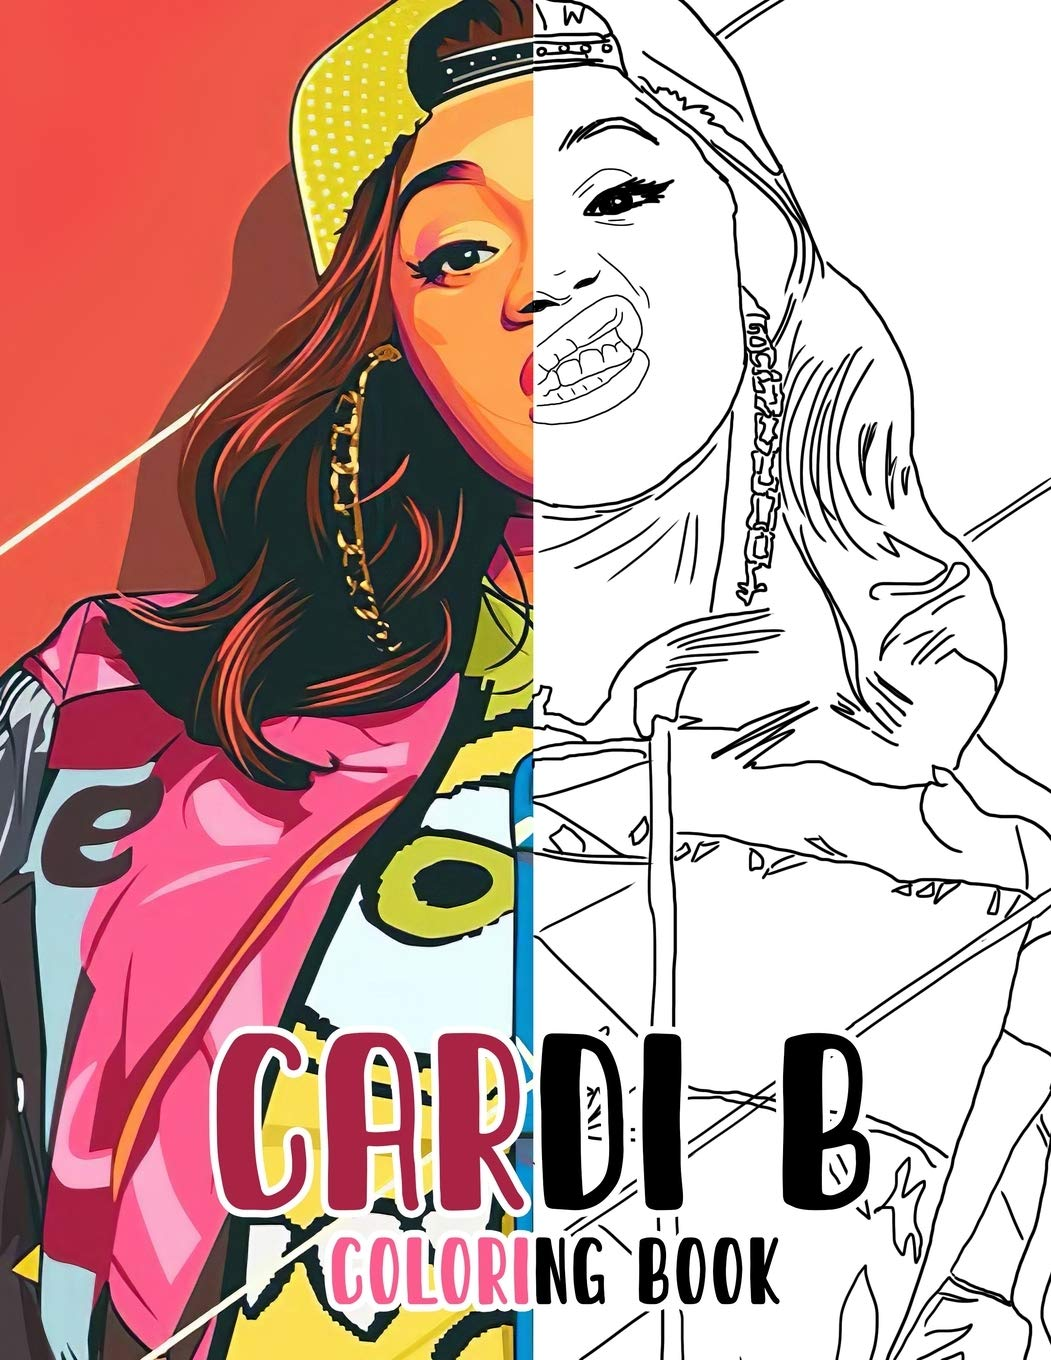 Cardi B Coloring Book For Teens And Adults Fans Great Unique Coloring Pages Robertson Greg 9798650743996 Amazon Com Books